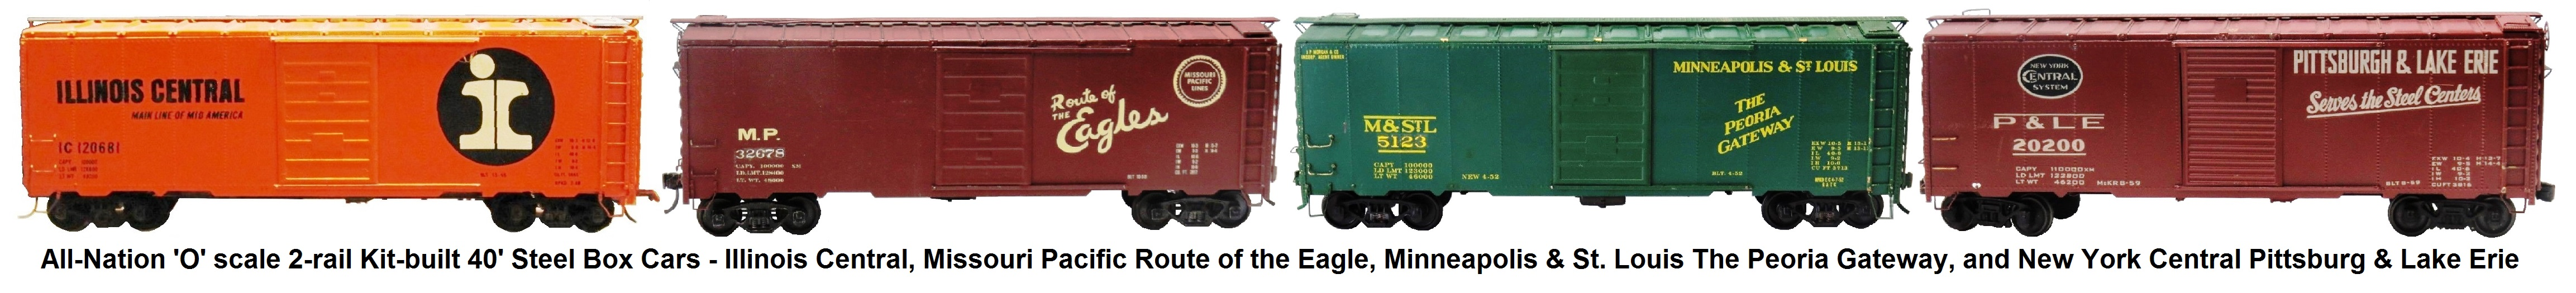 All-Nation 'O' scale 40' Steel Box Cars Kit-built into Illinois Central, Missouri Pacific Route of the Eagle, Minneapolis & St. Louis The Peoria Gateway, and New York Central Pittsburg & Lake Erie Liveries